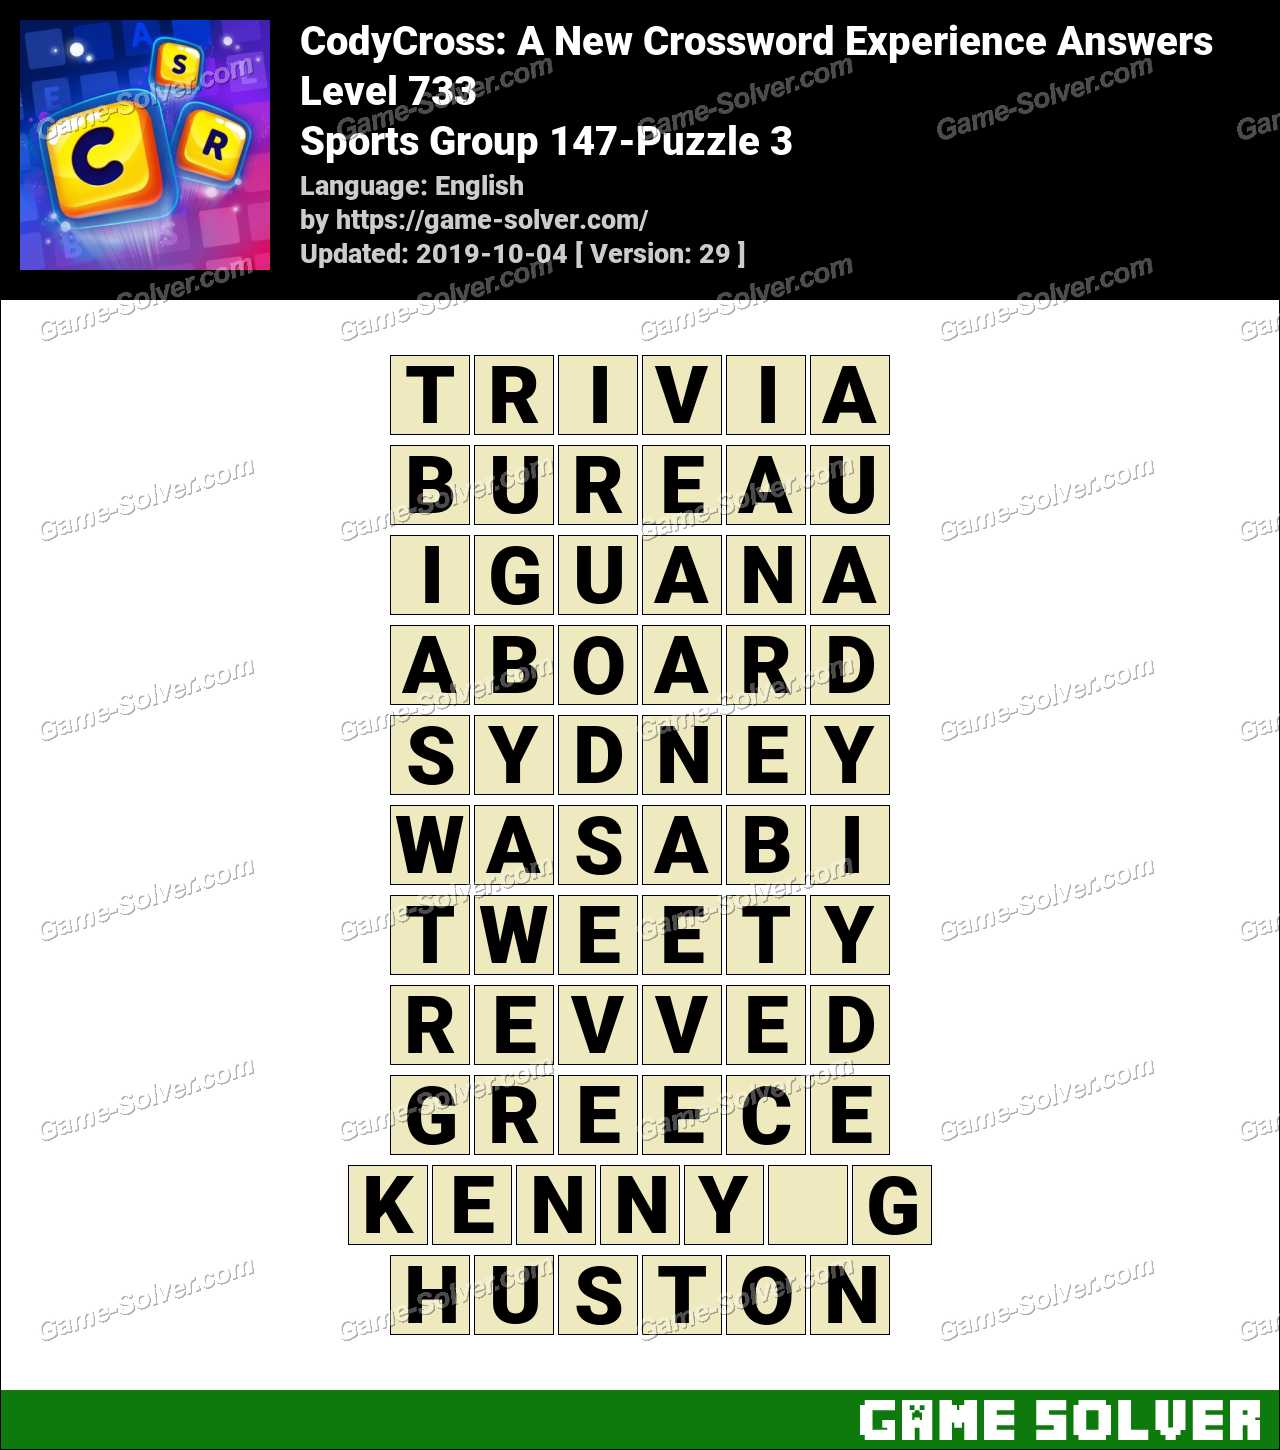 CodyCross Sports Group 147-Puzzle 3 Answers